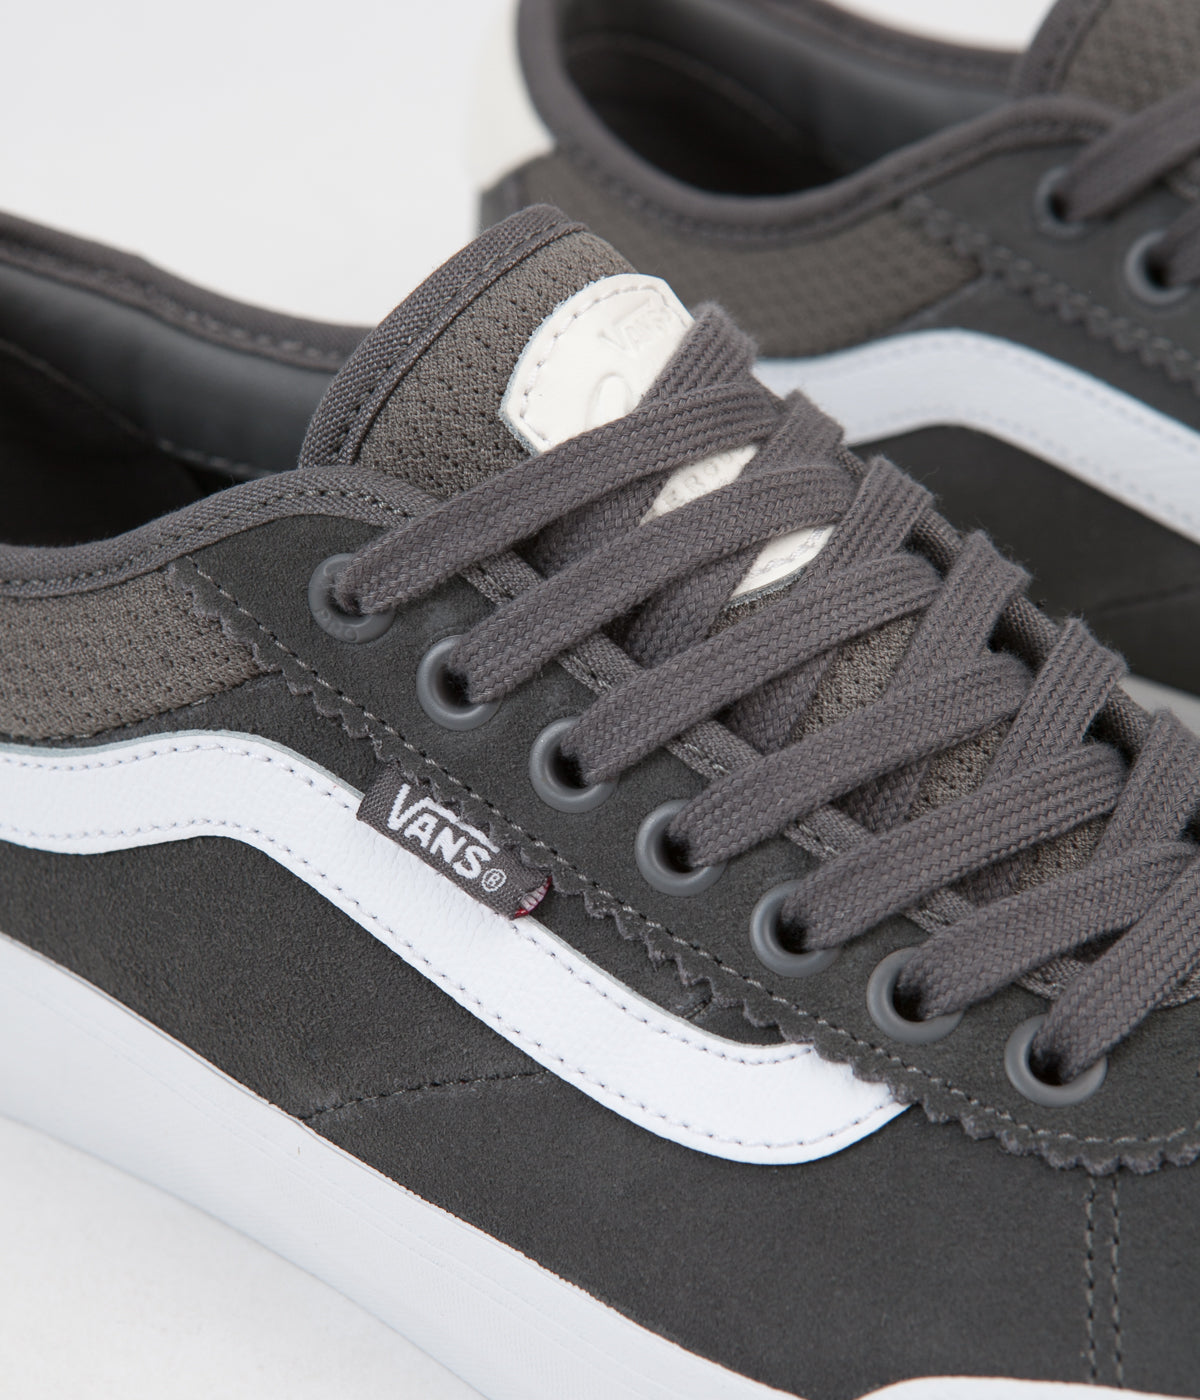 cf5f9164863 ... Vans Chima Pro 2 Shoes - Pewter   True White ...